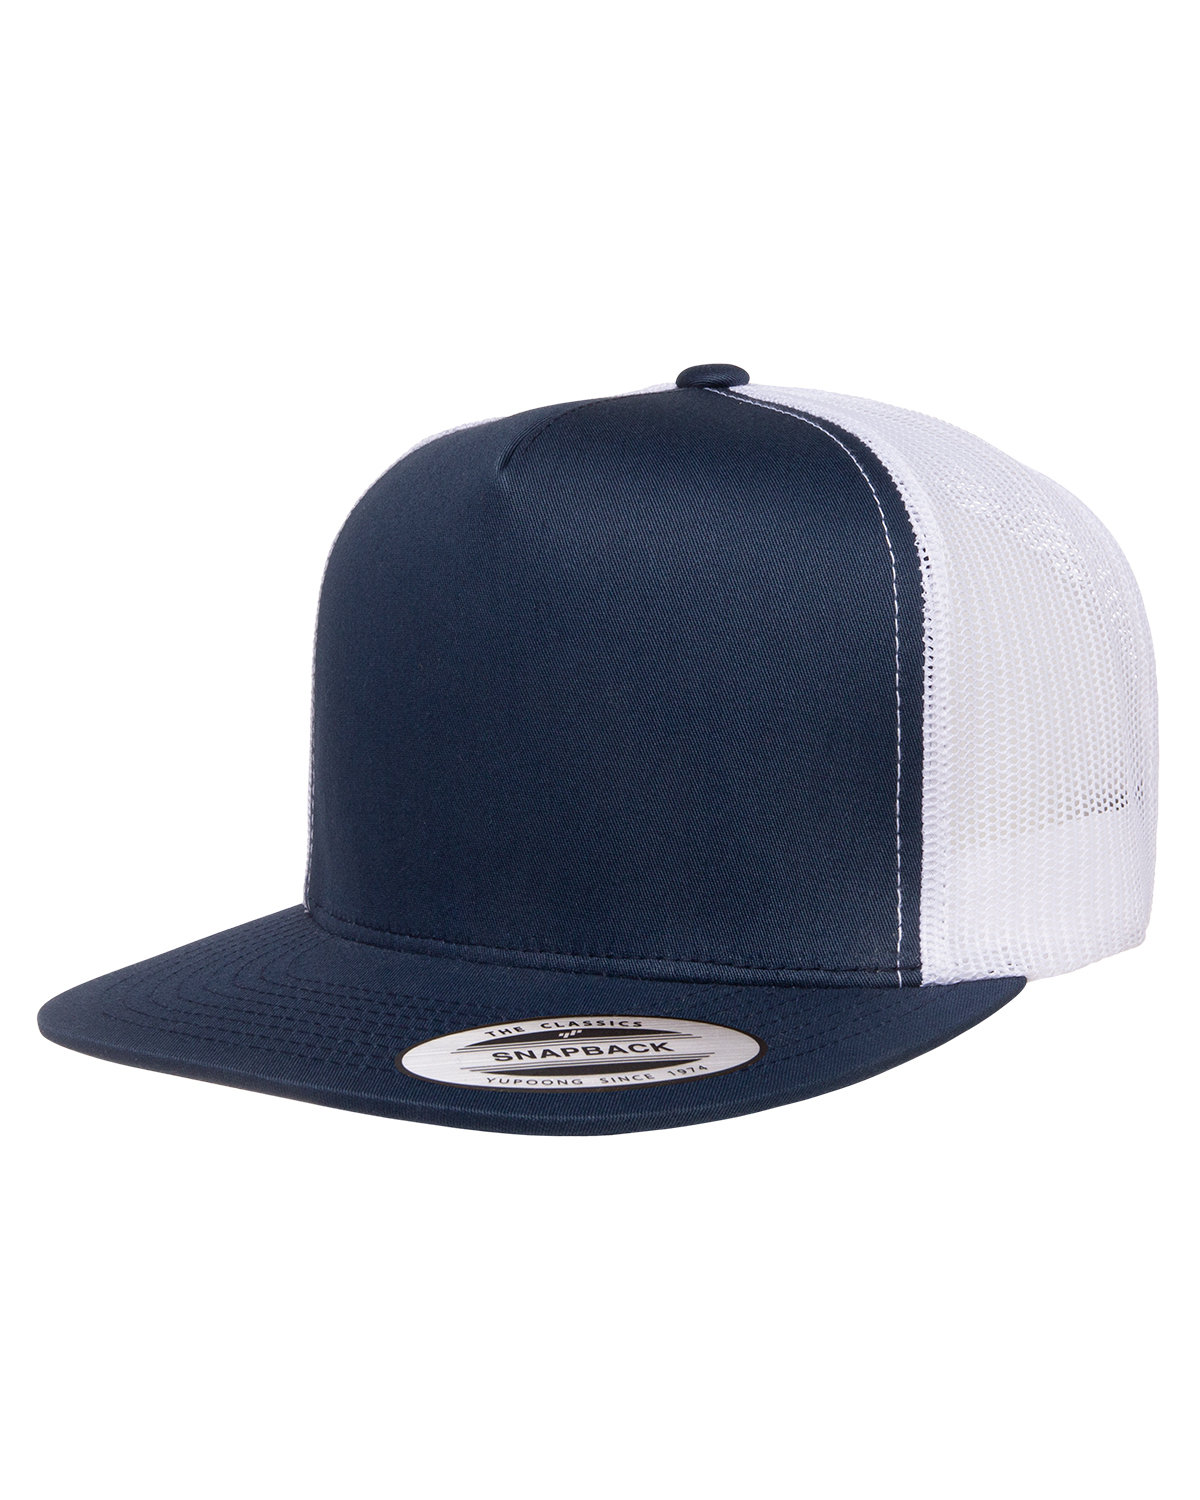 Yupoong Adult 5-Panel Classic Trucker Cap NAVY/ WHITE